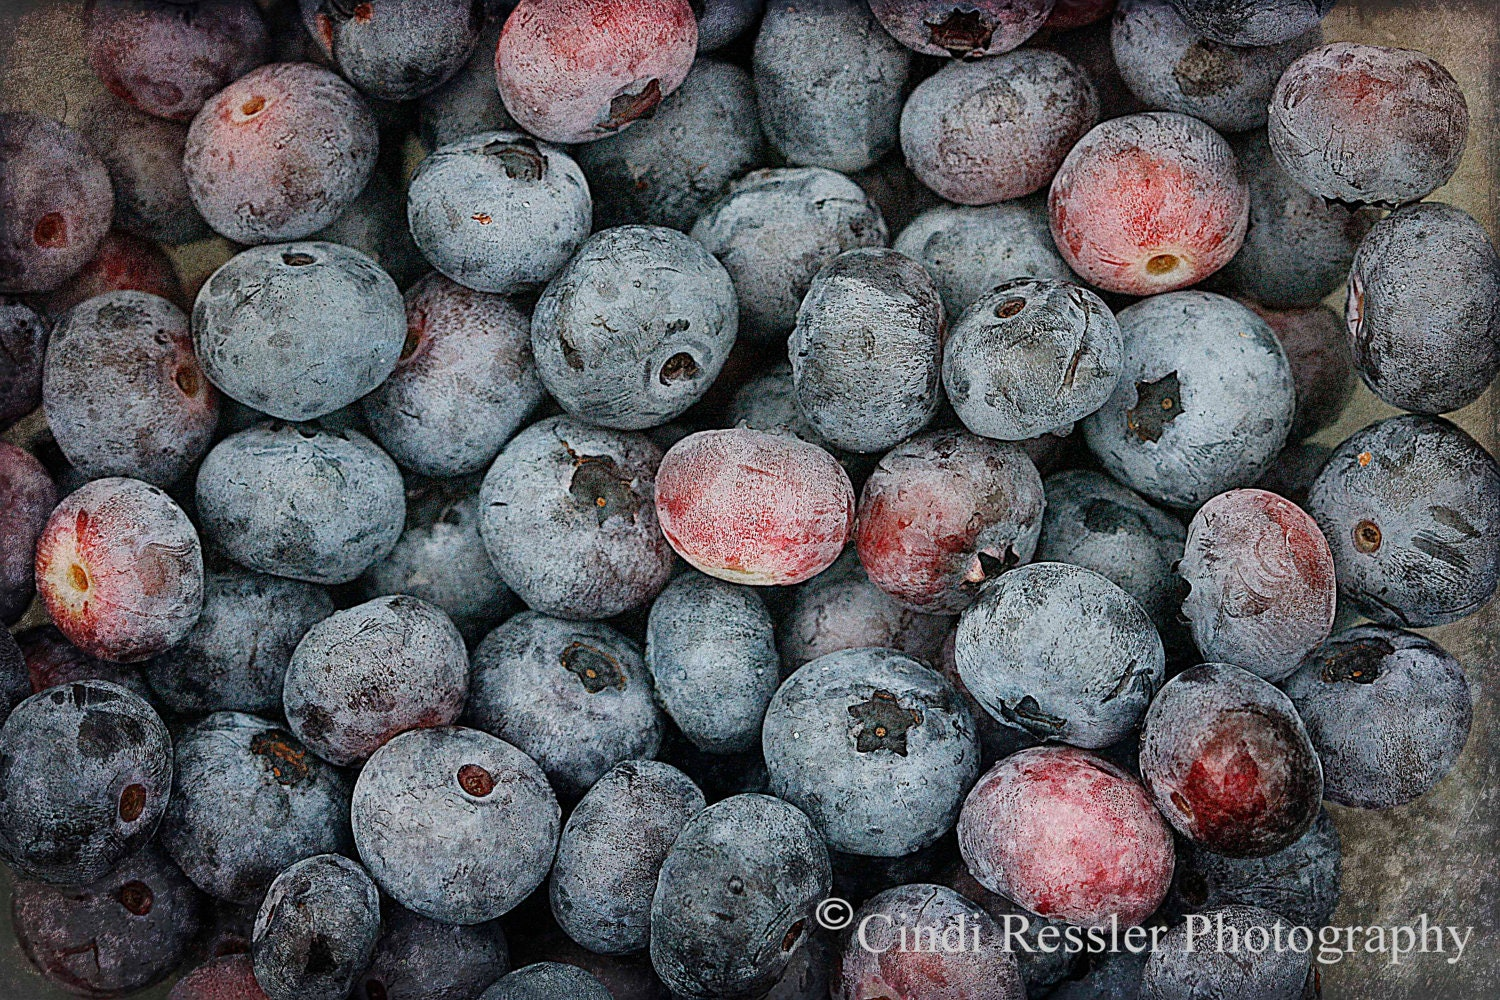 Blueberries 2, 5x7 Fine Art Photography, Food Photography - CindiRessler